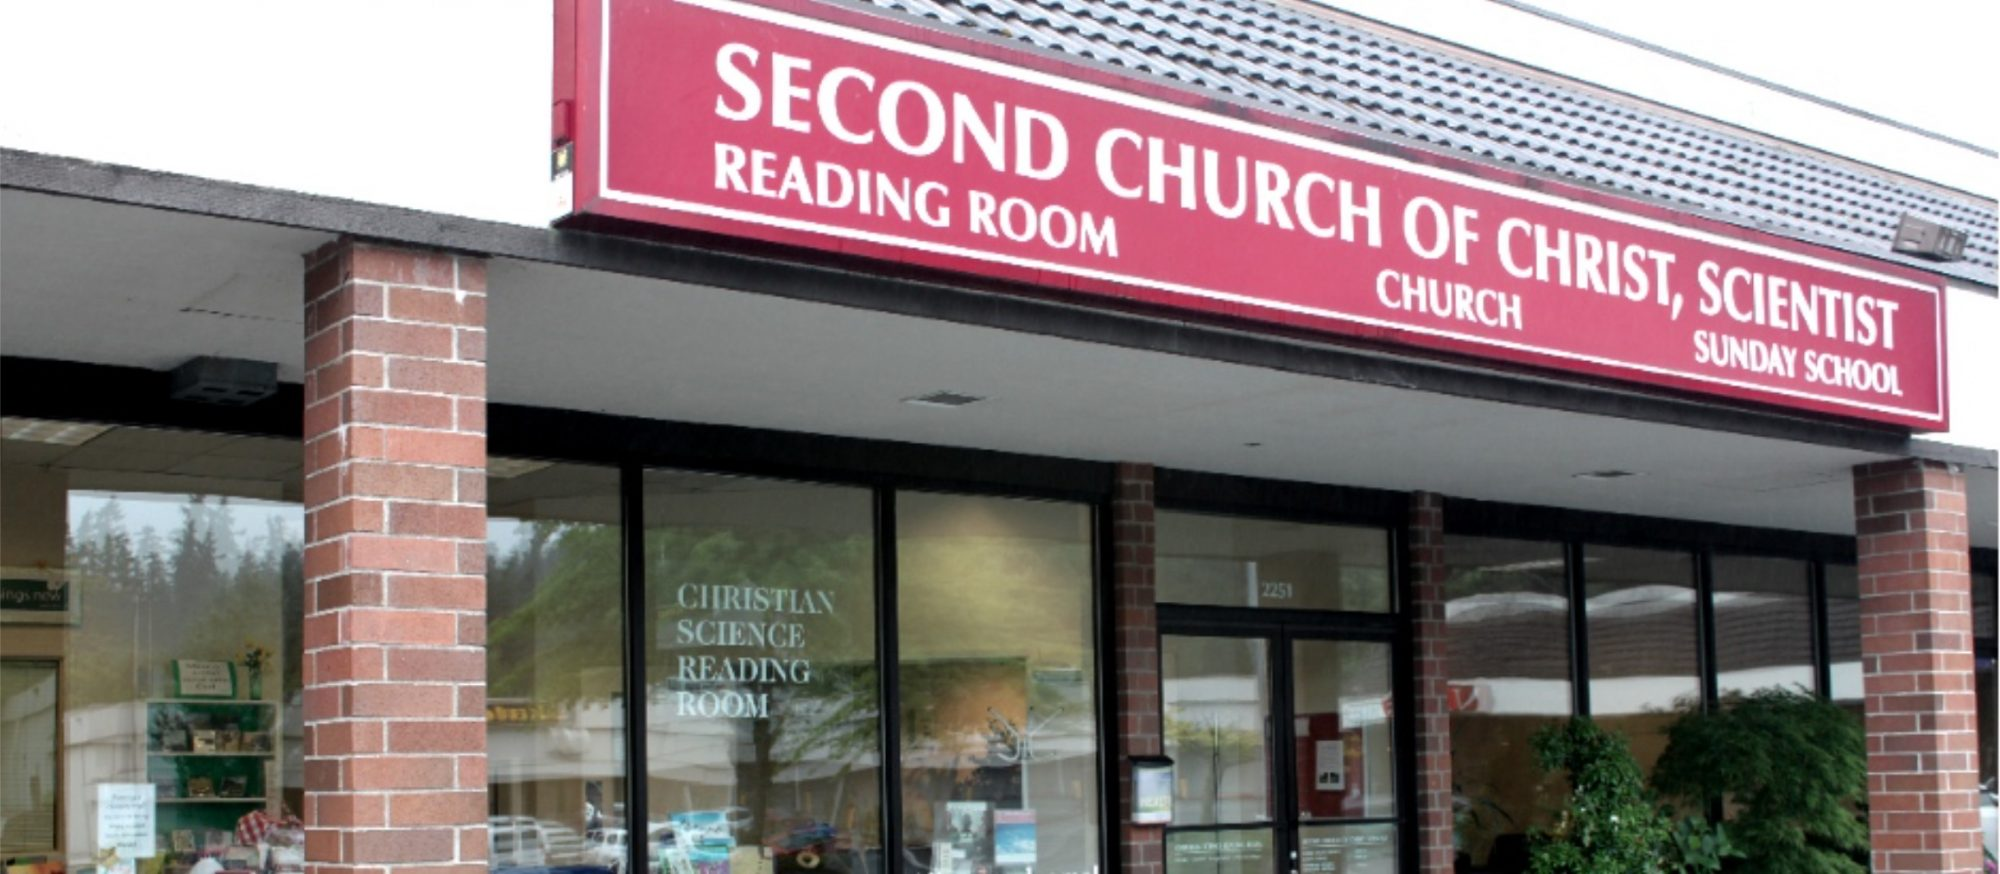 Second Church of Christ, Scientist, Bellevue, WA